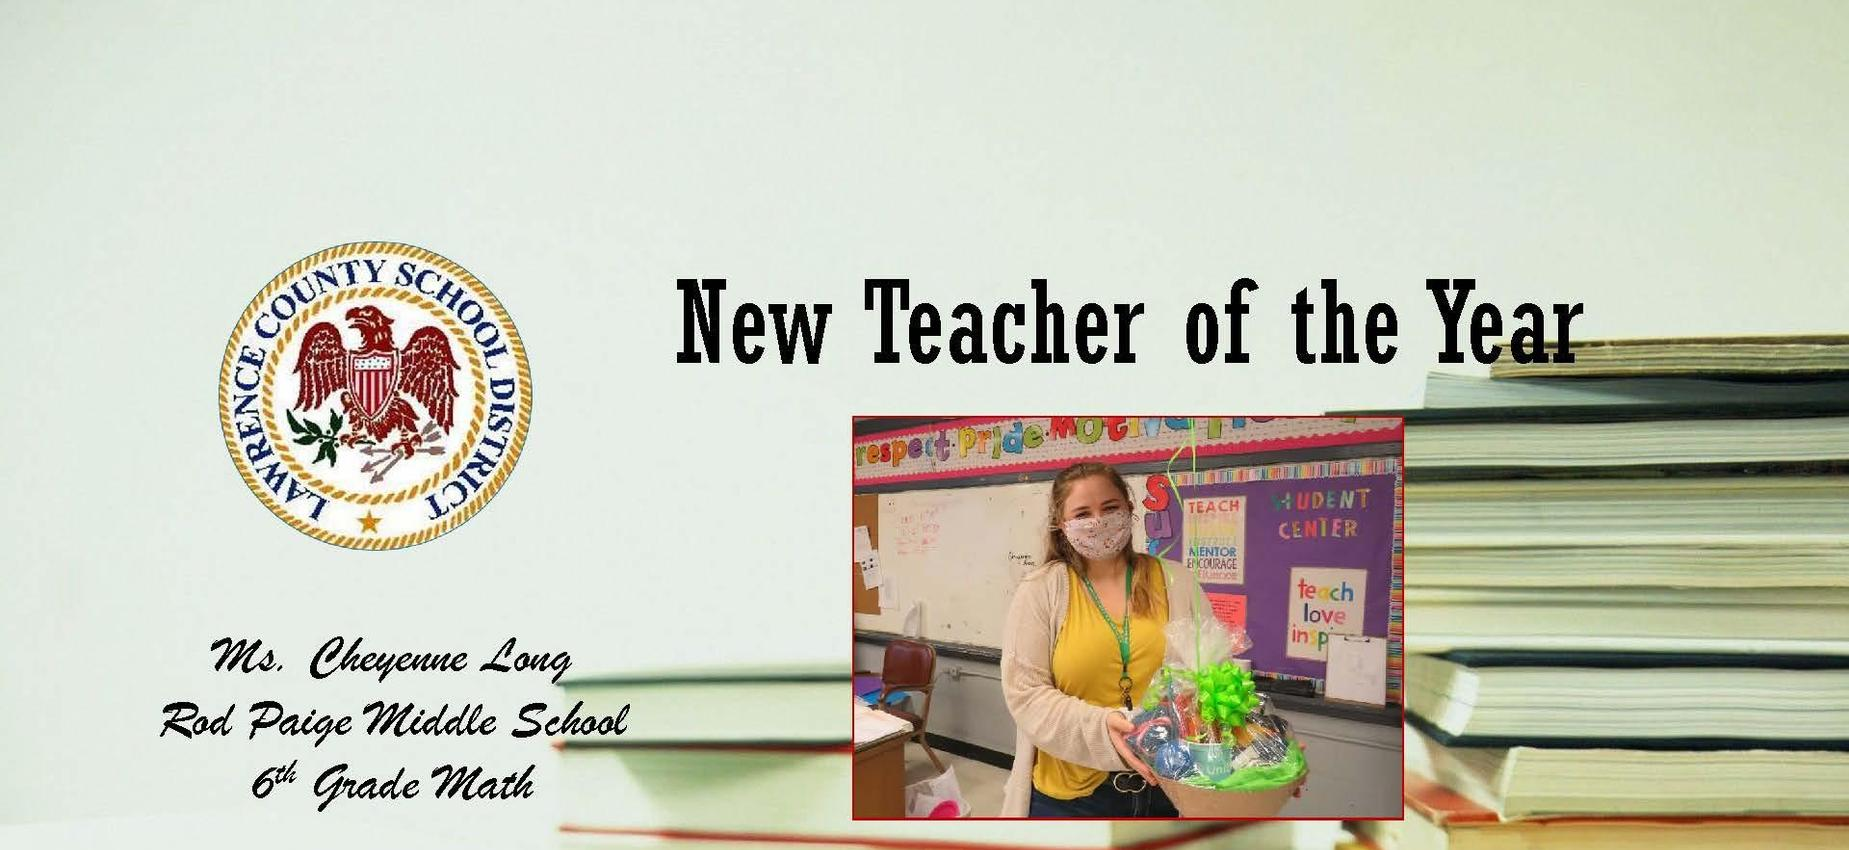 District New Teacher of the Year 2020- Ms. Cheyenne Long